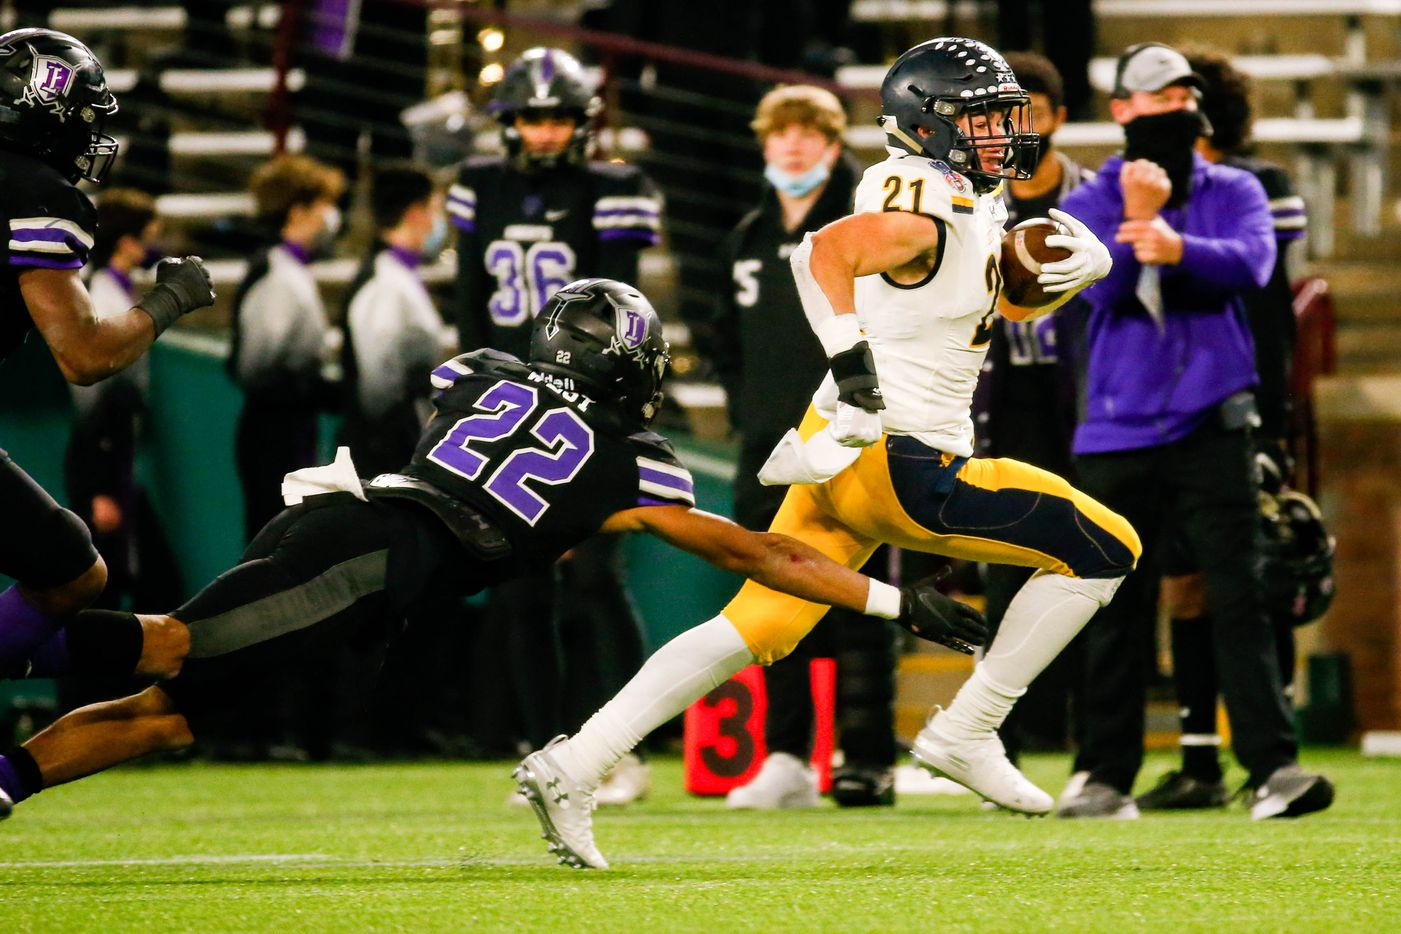 Highland Park's Anthony Ghobriel (21) dodges Frisco Independence's Brayden West (22) during the second half of a Class 5A Division I area-round playoff game against  at Globe Life Park in Arlington on Thursday, Dec. 17, 2020. Highland Park won 42-20. (Juan Figueroa/ The Dallas Morning News)